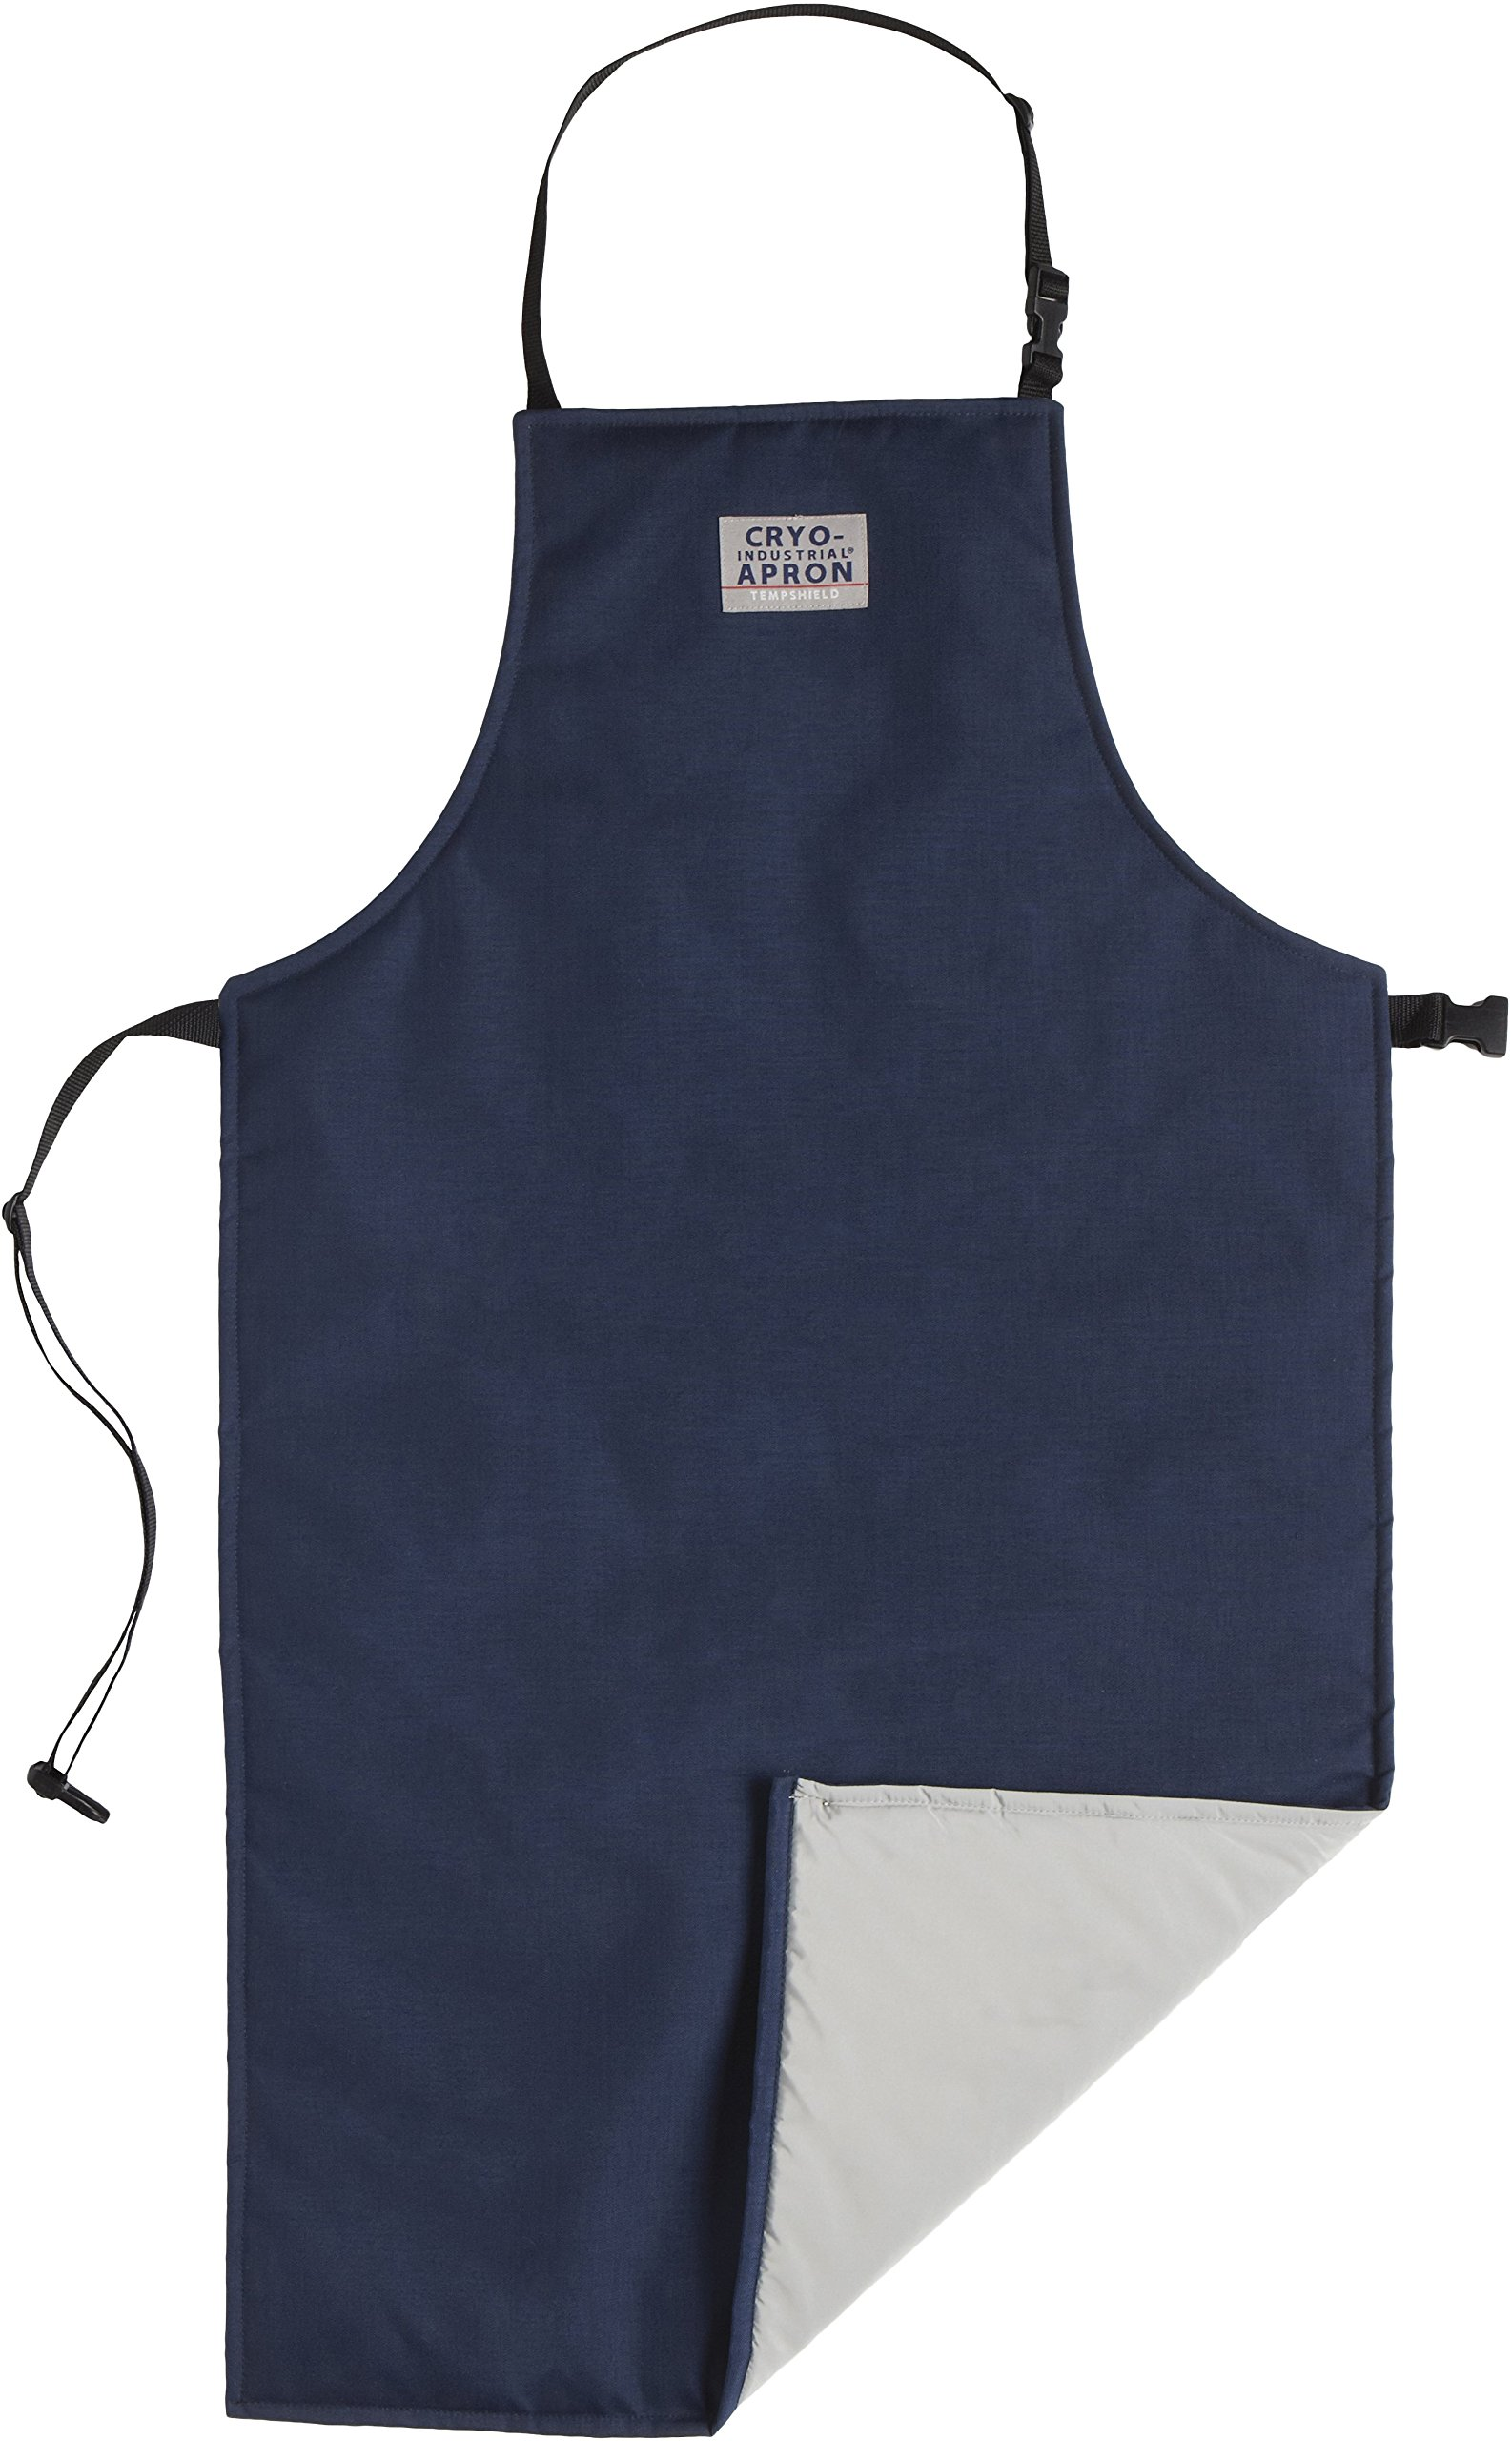 Cryo-Industrial CI-A42 Cryogenic Apron, 42'' Length by Tempshield (Image #2)